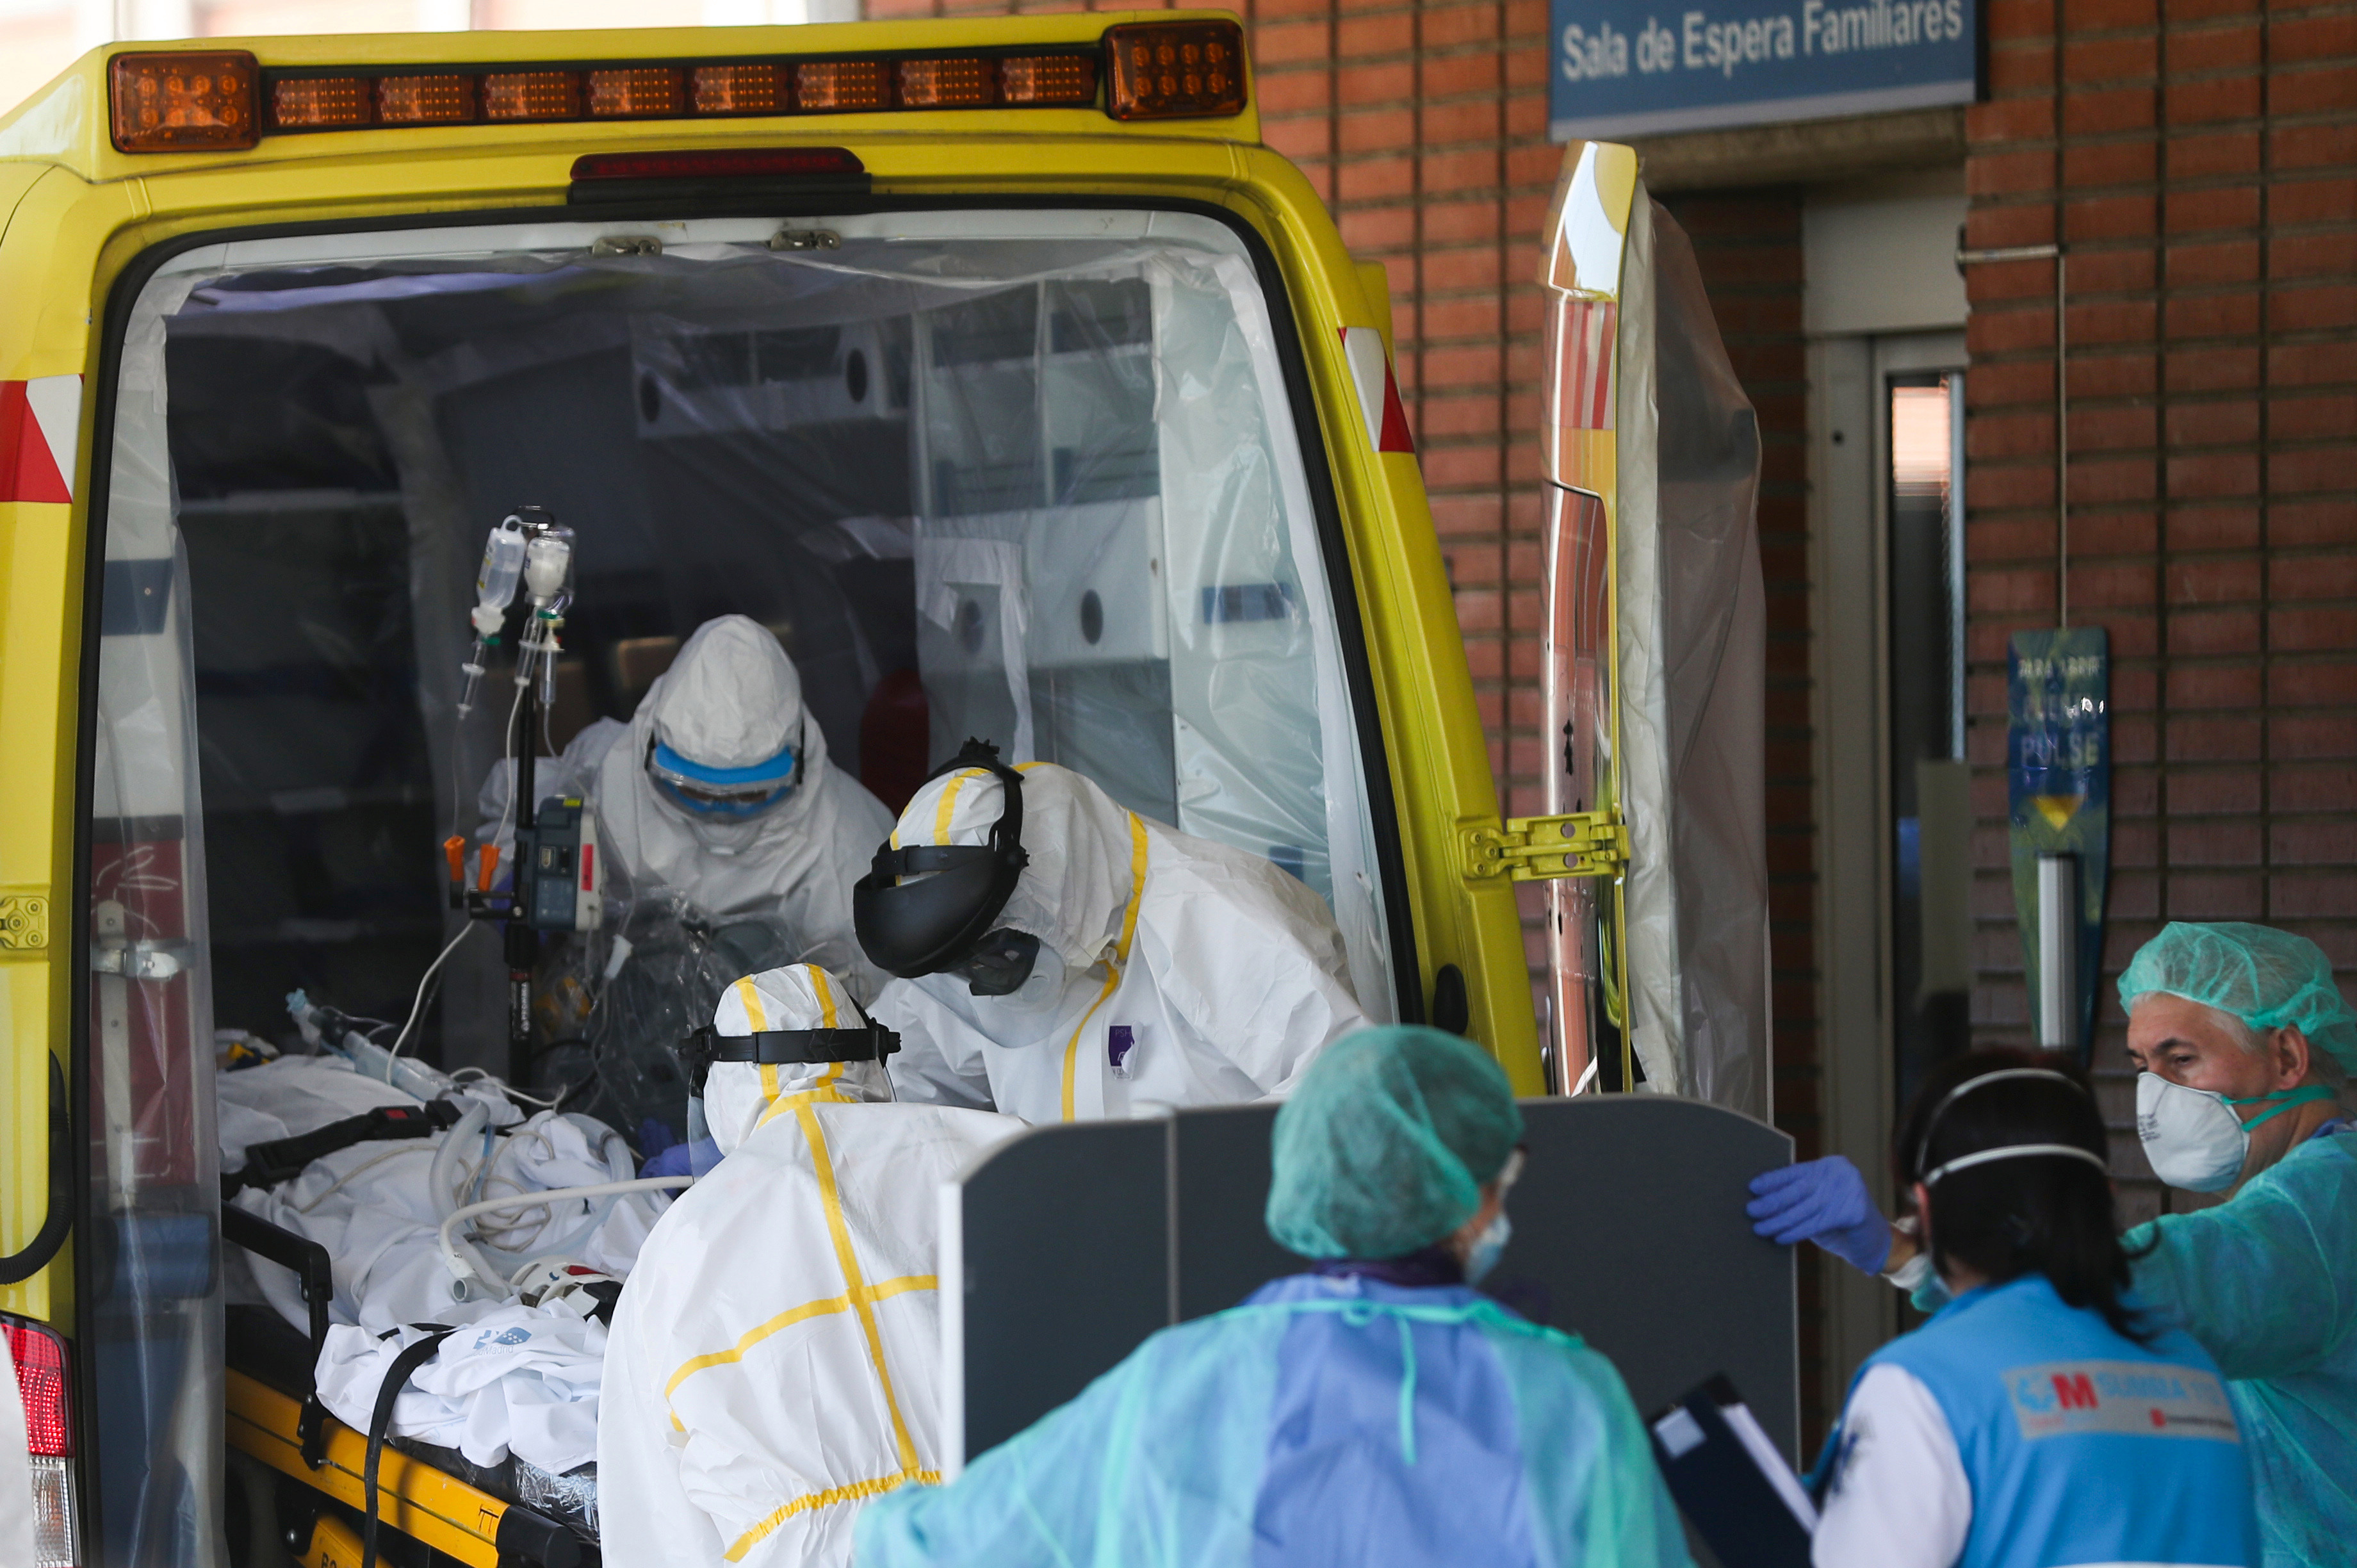 Paramedics wearing hazmat suits help a patient into a hospital in Spain